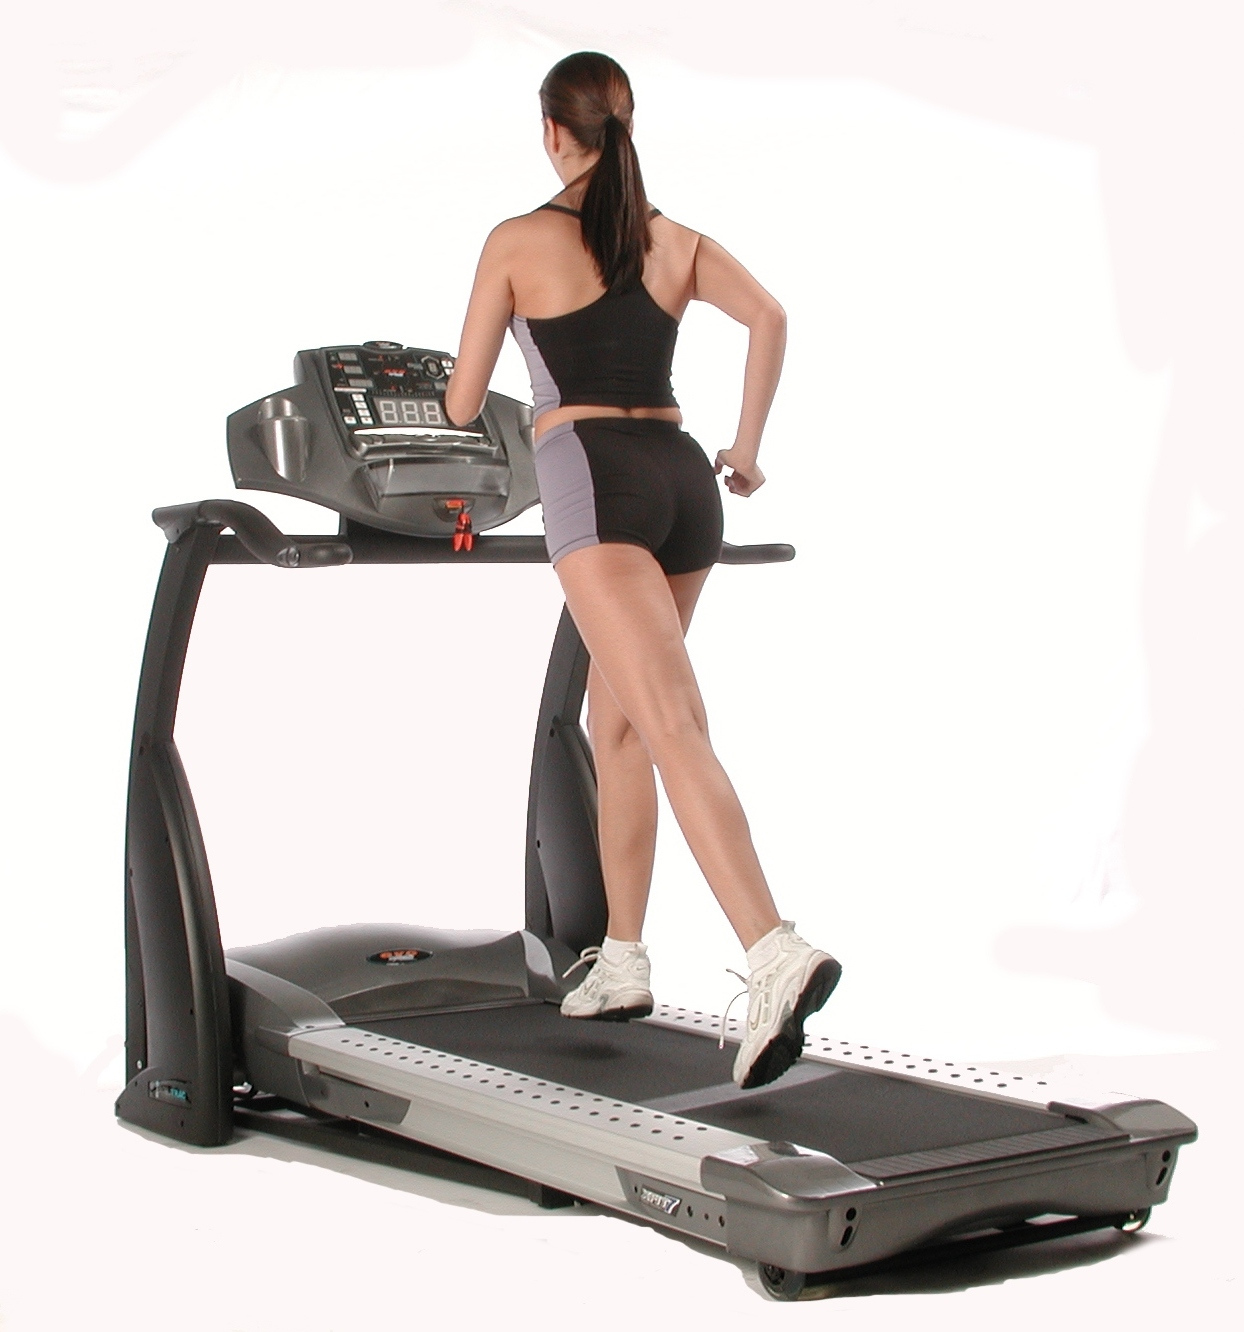 fitness elliptical trainers, equip fitness, fitness, fitness equipment repair